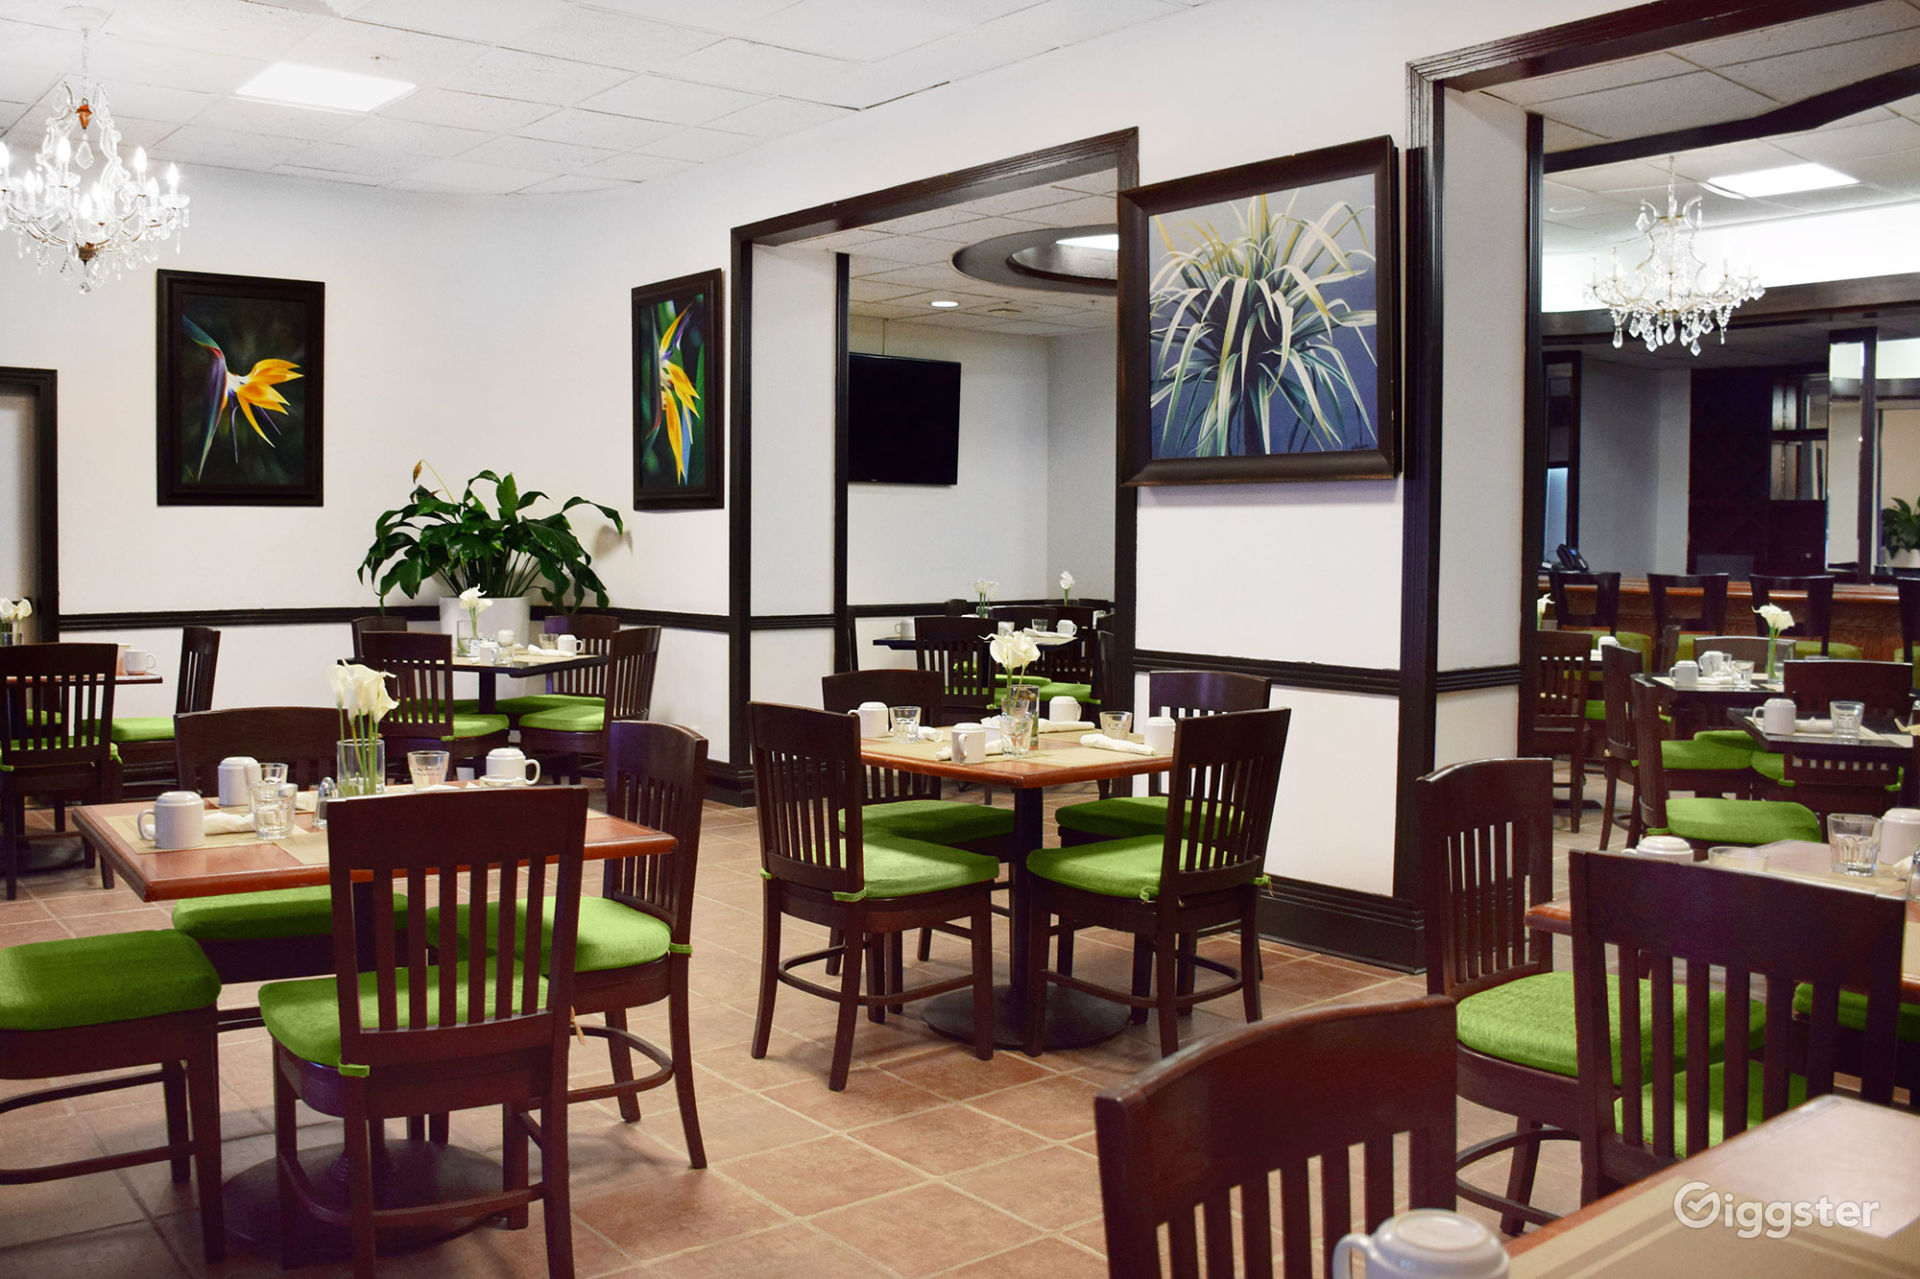 Pleasant and Relaxing Restaurant Event Space with the Best Service Miami Beach Offers! Photo 1